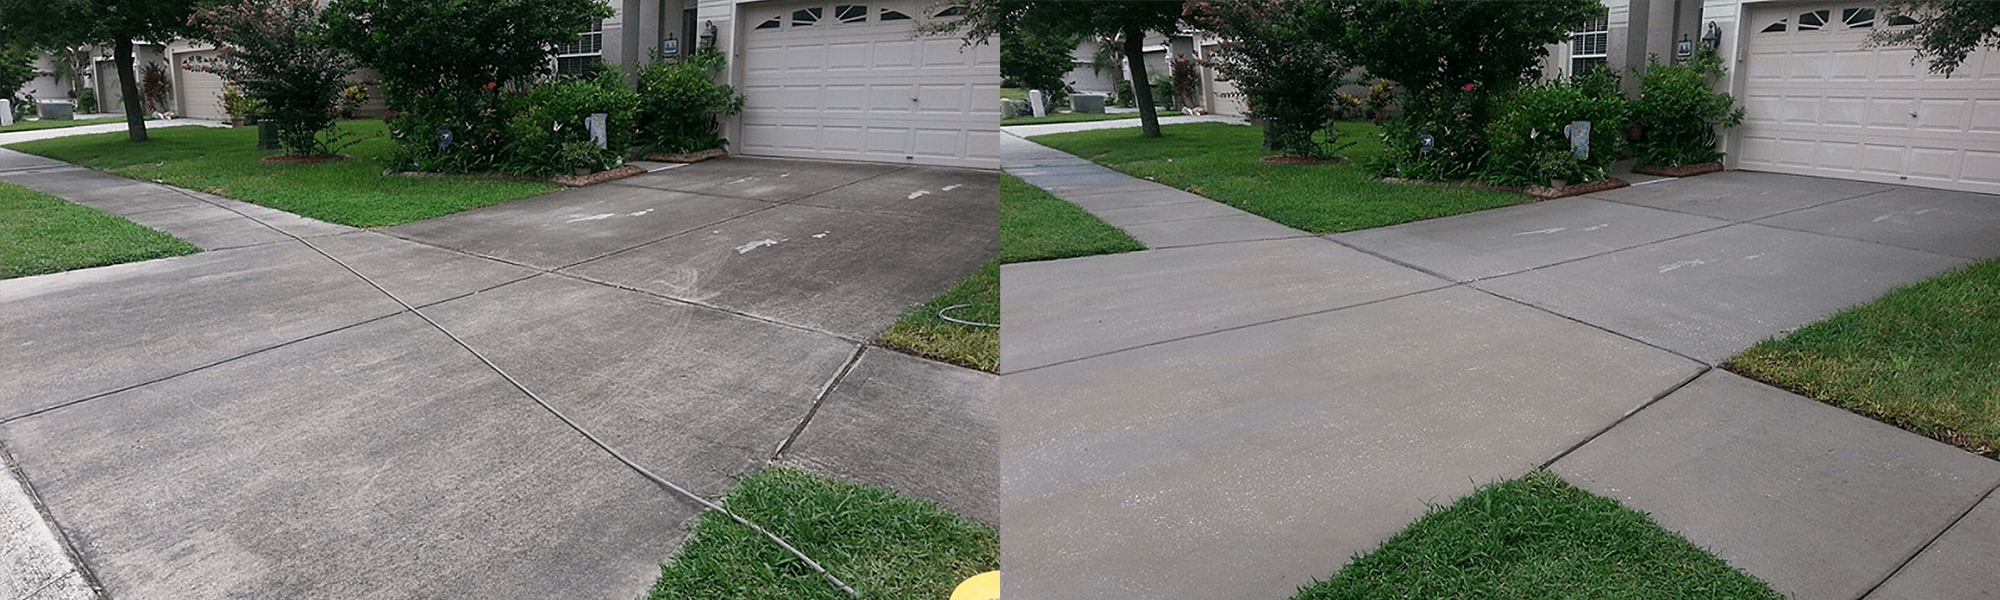 Roof power washing driveway pressure washing vero beach for Driveway pressure washer